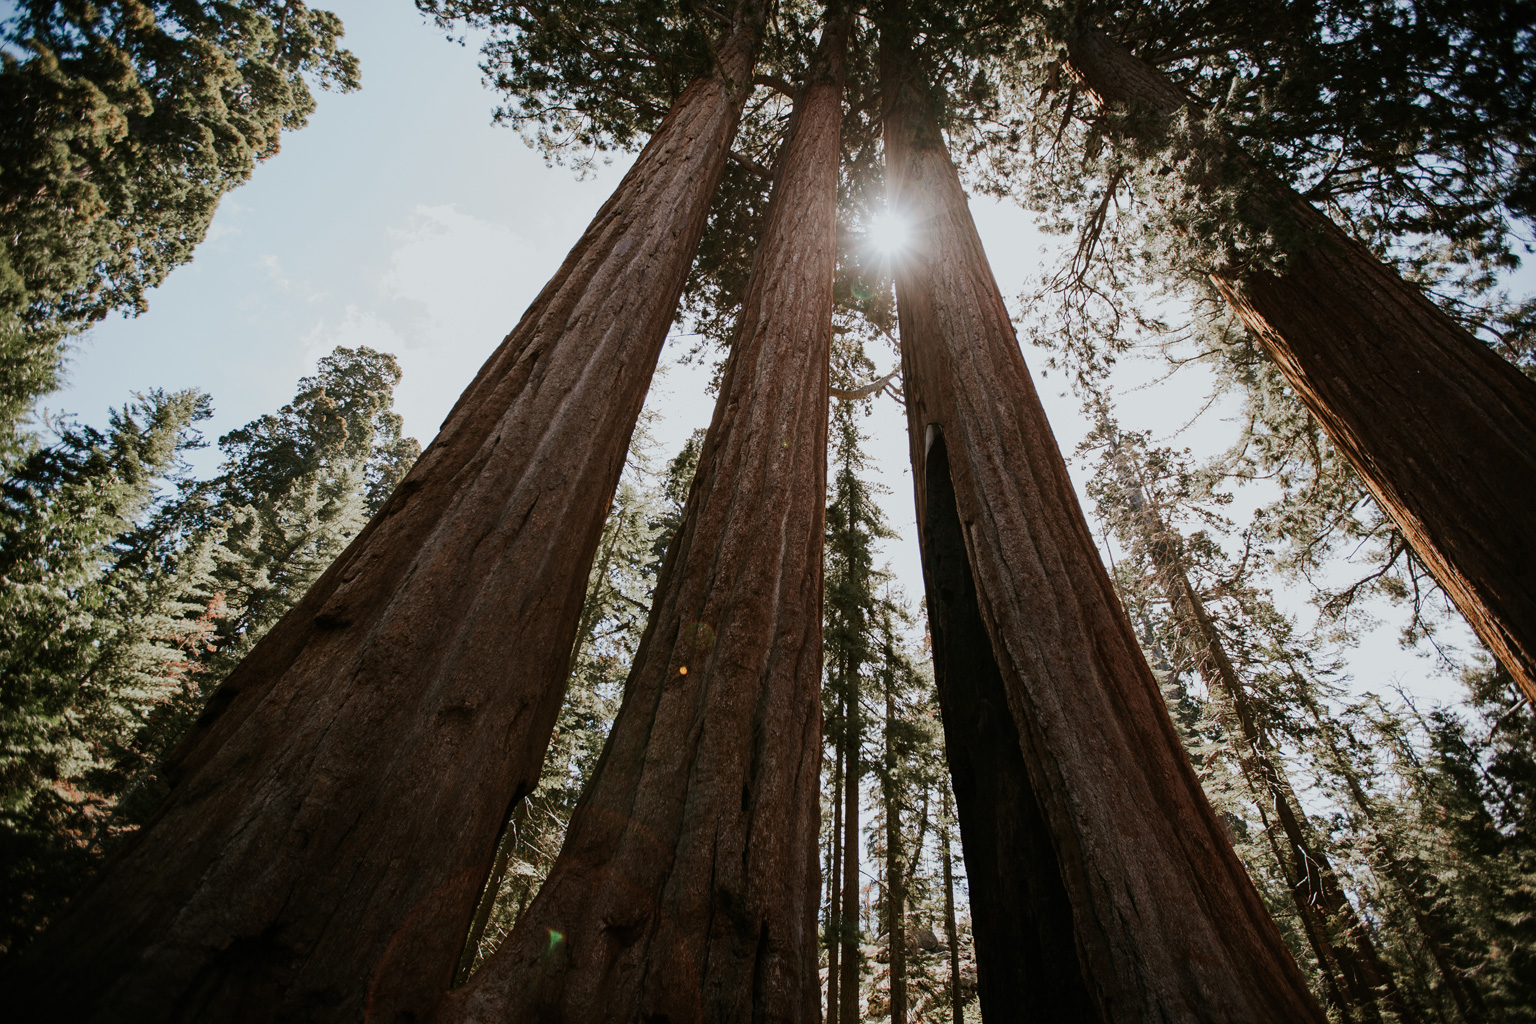 CindyGiovagnoli_California_Sequoia_Kings_Canyon_National_Park_trees_travel_road_trip-010.jpg